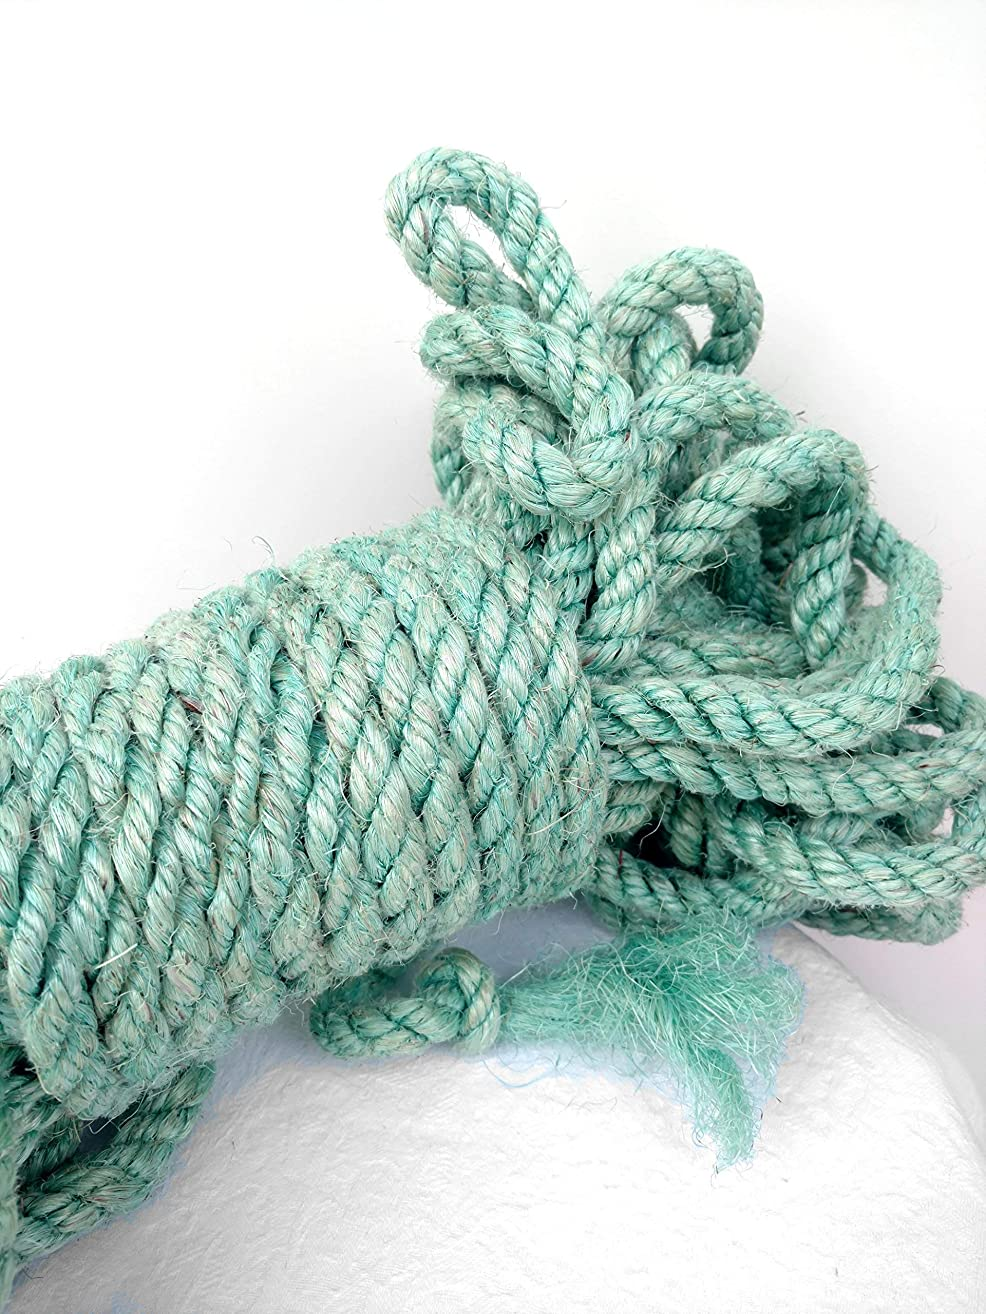 Blue Green Sisal Rope, Dyed Robin's Egg Blue Color: 1/4